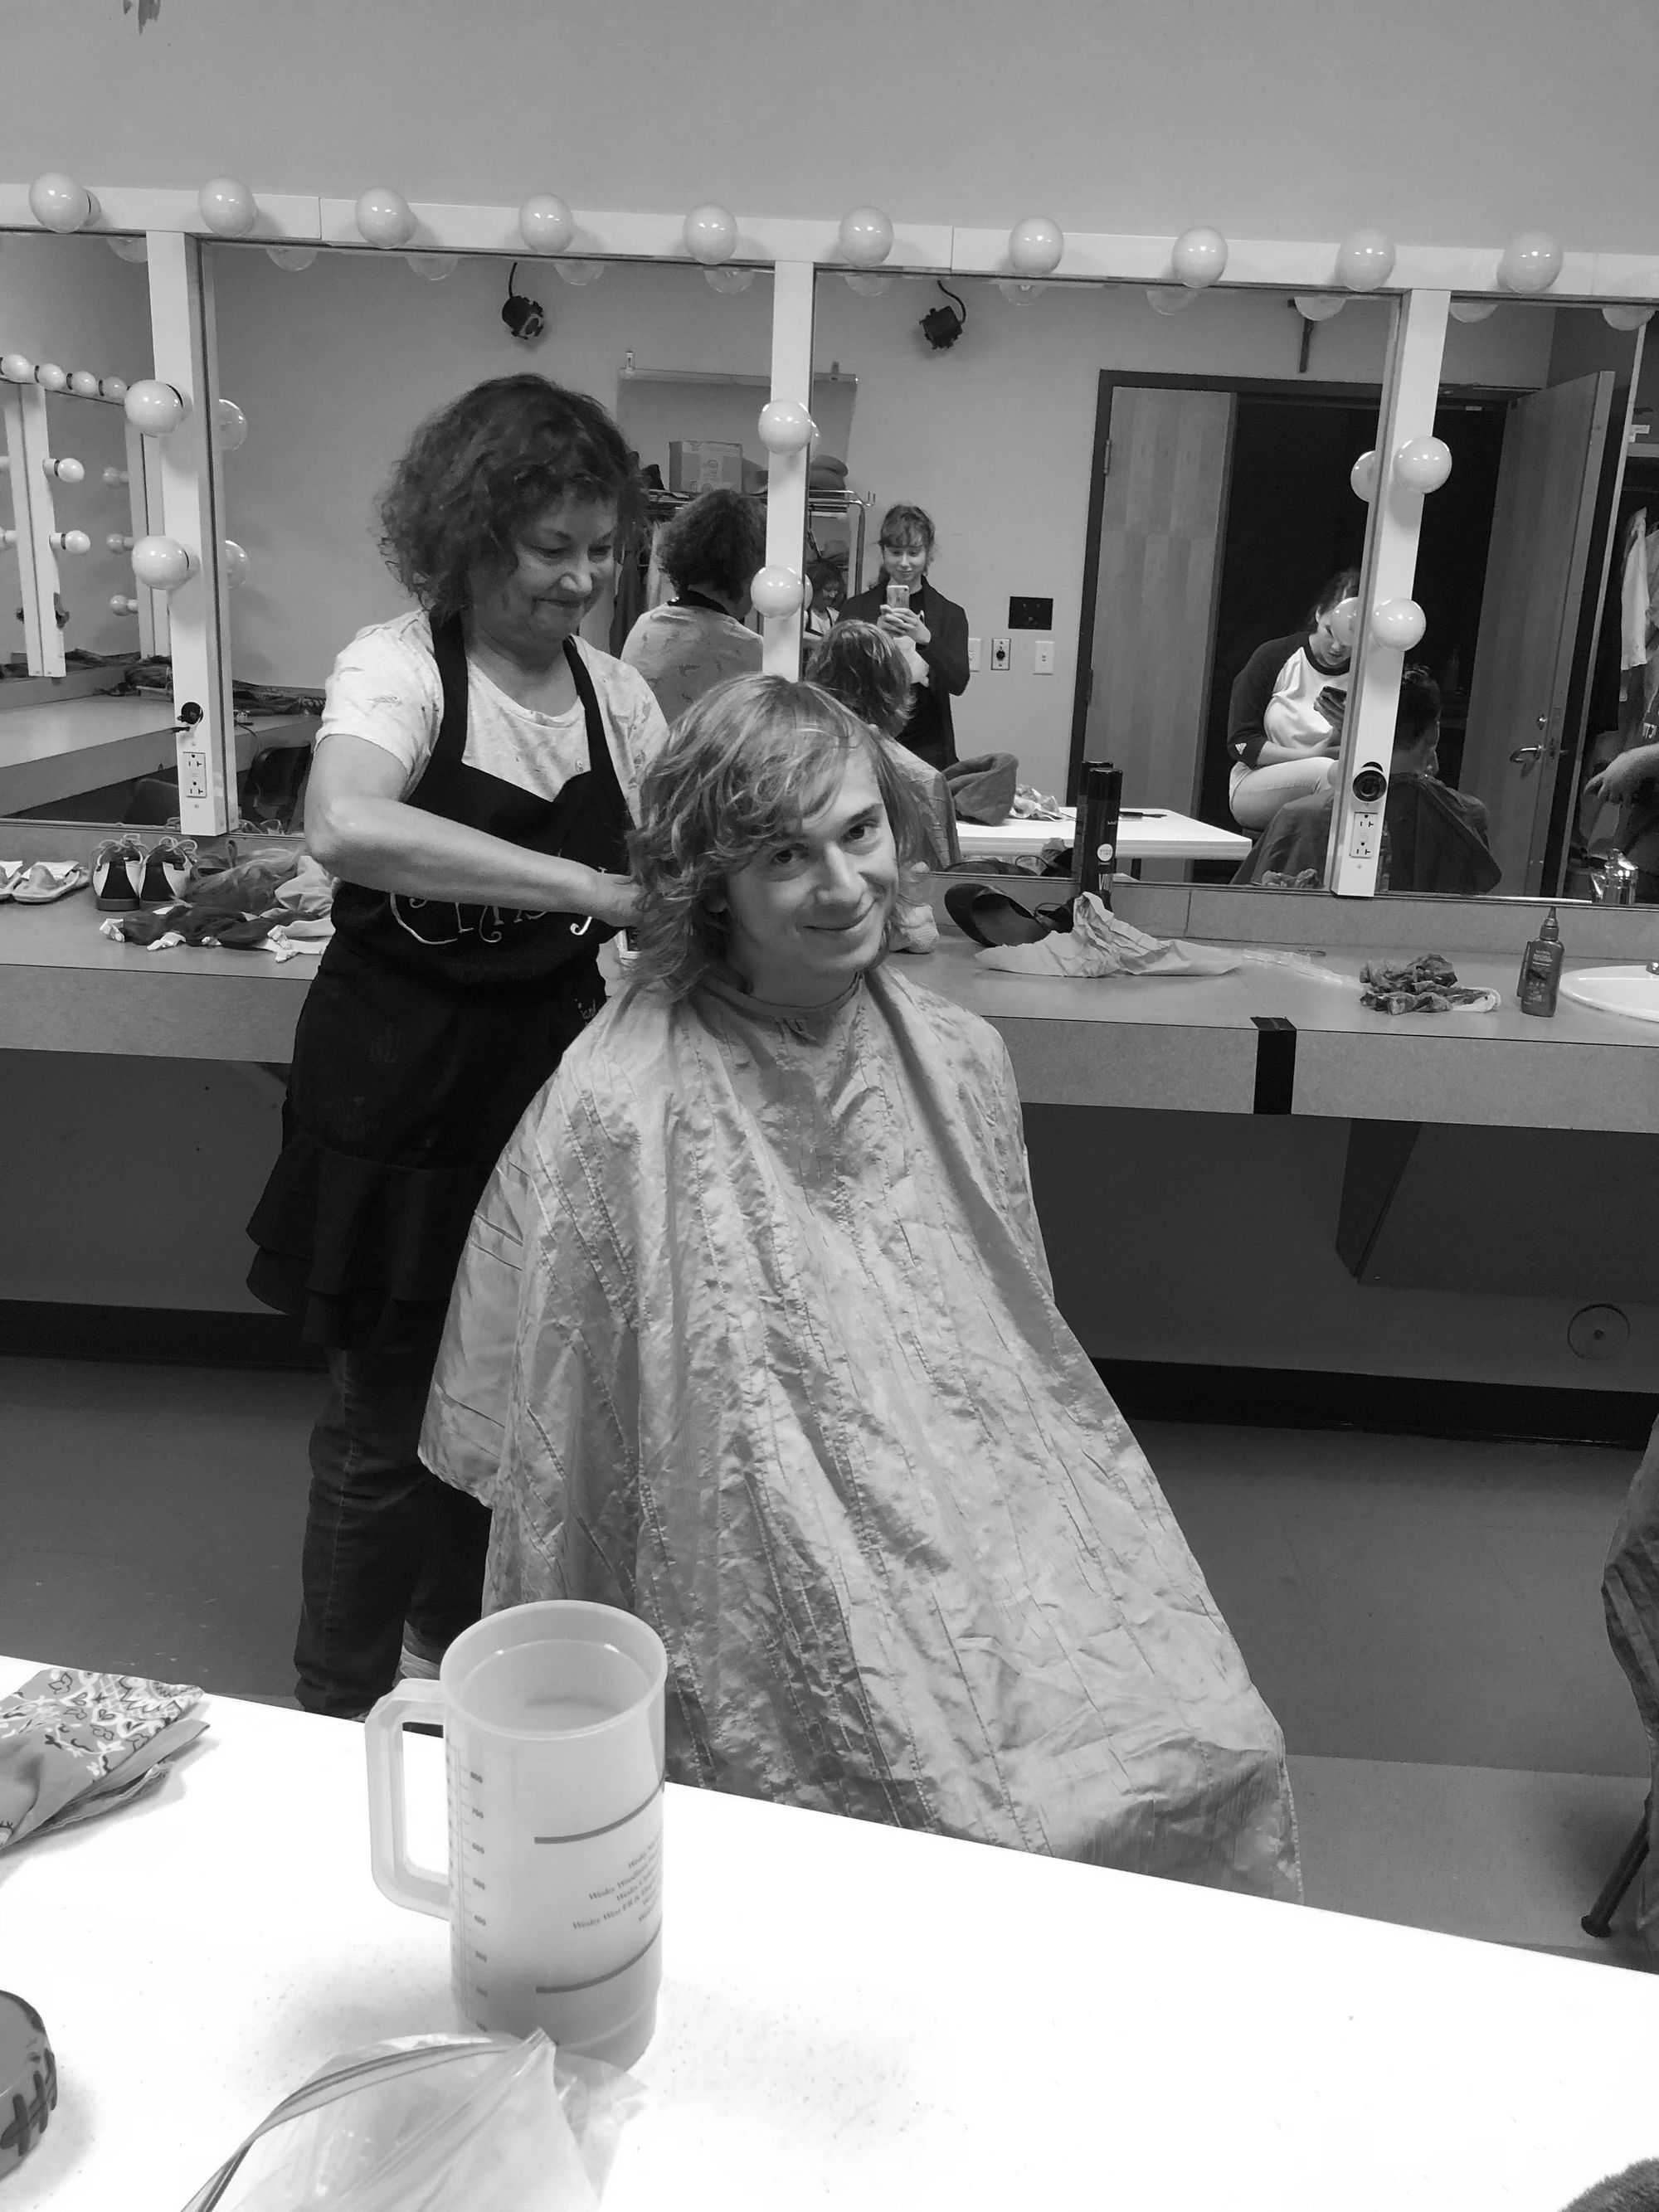 Theatre students agree to cut their hair for play